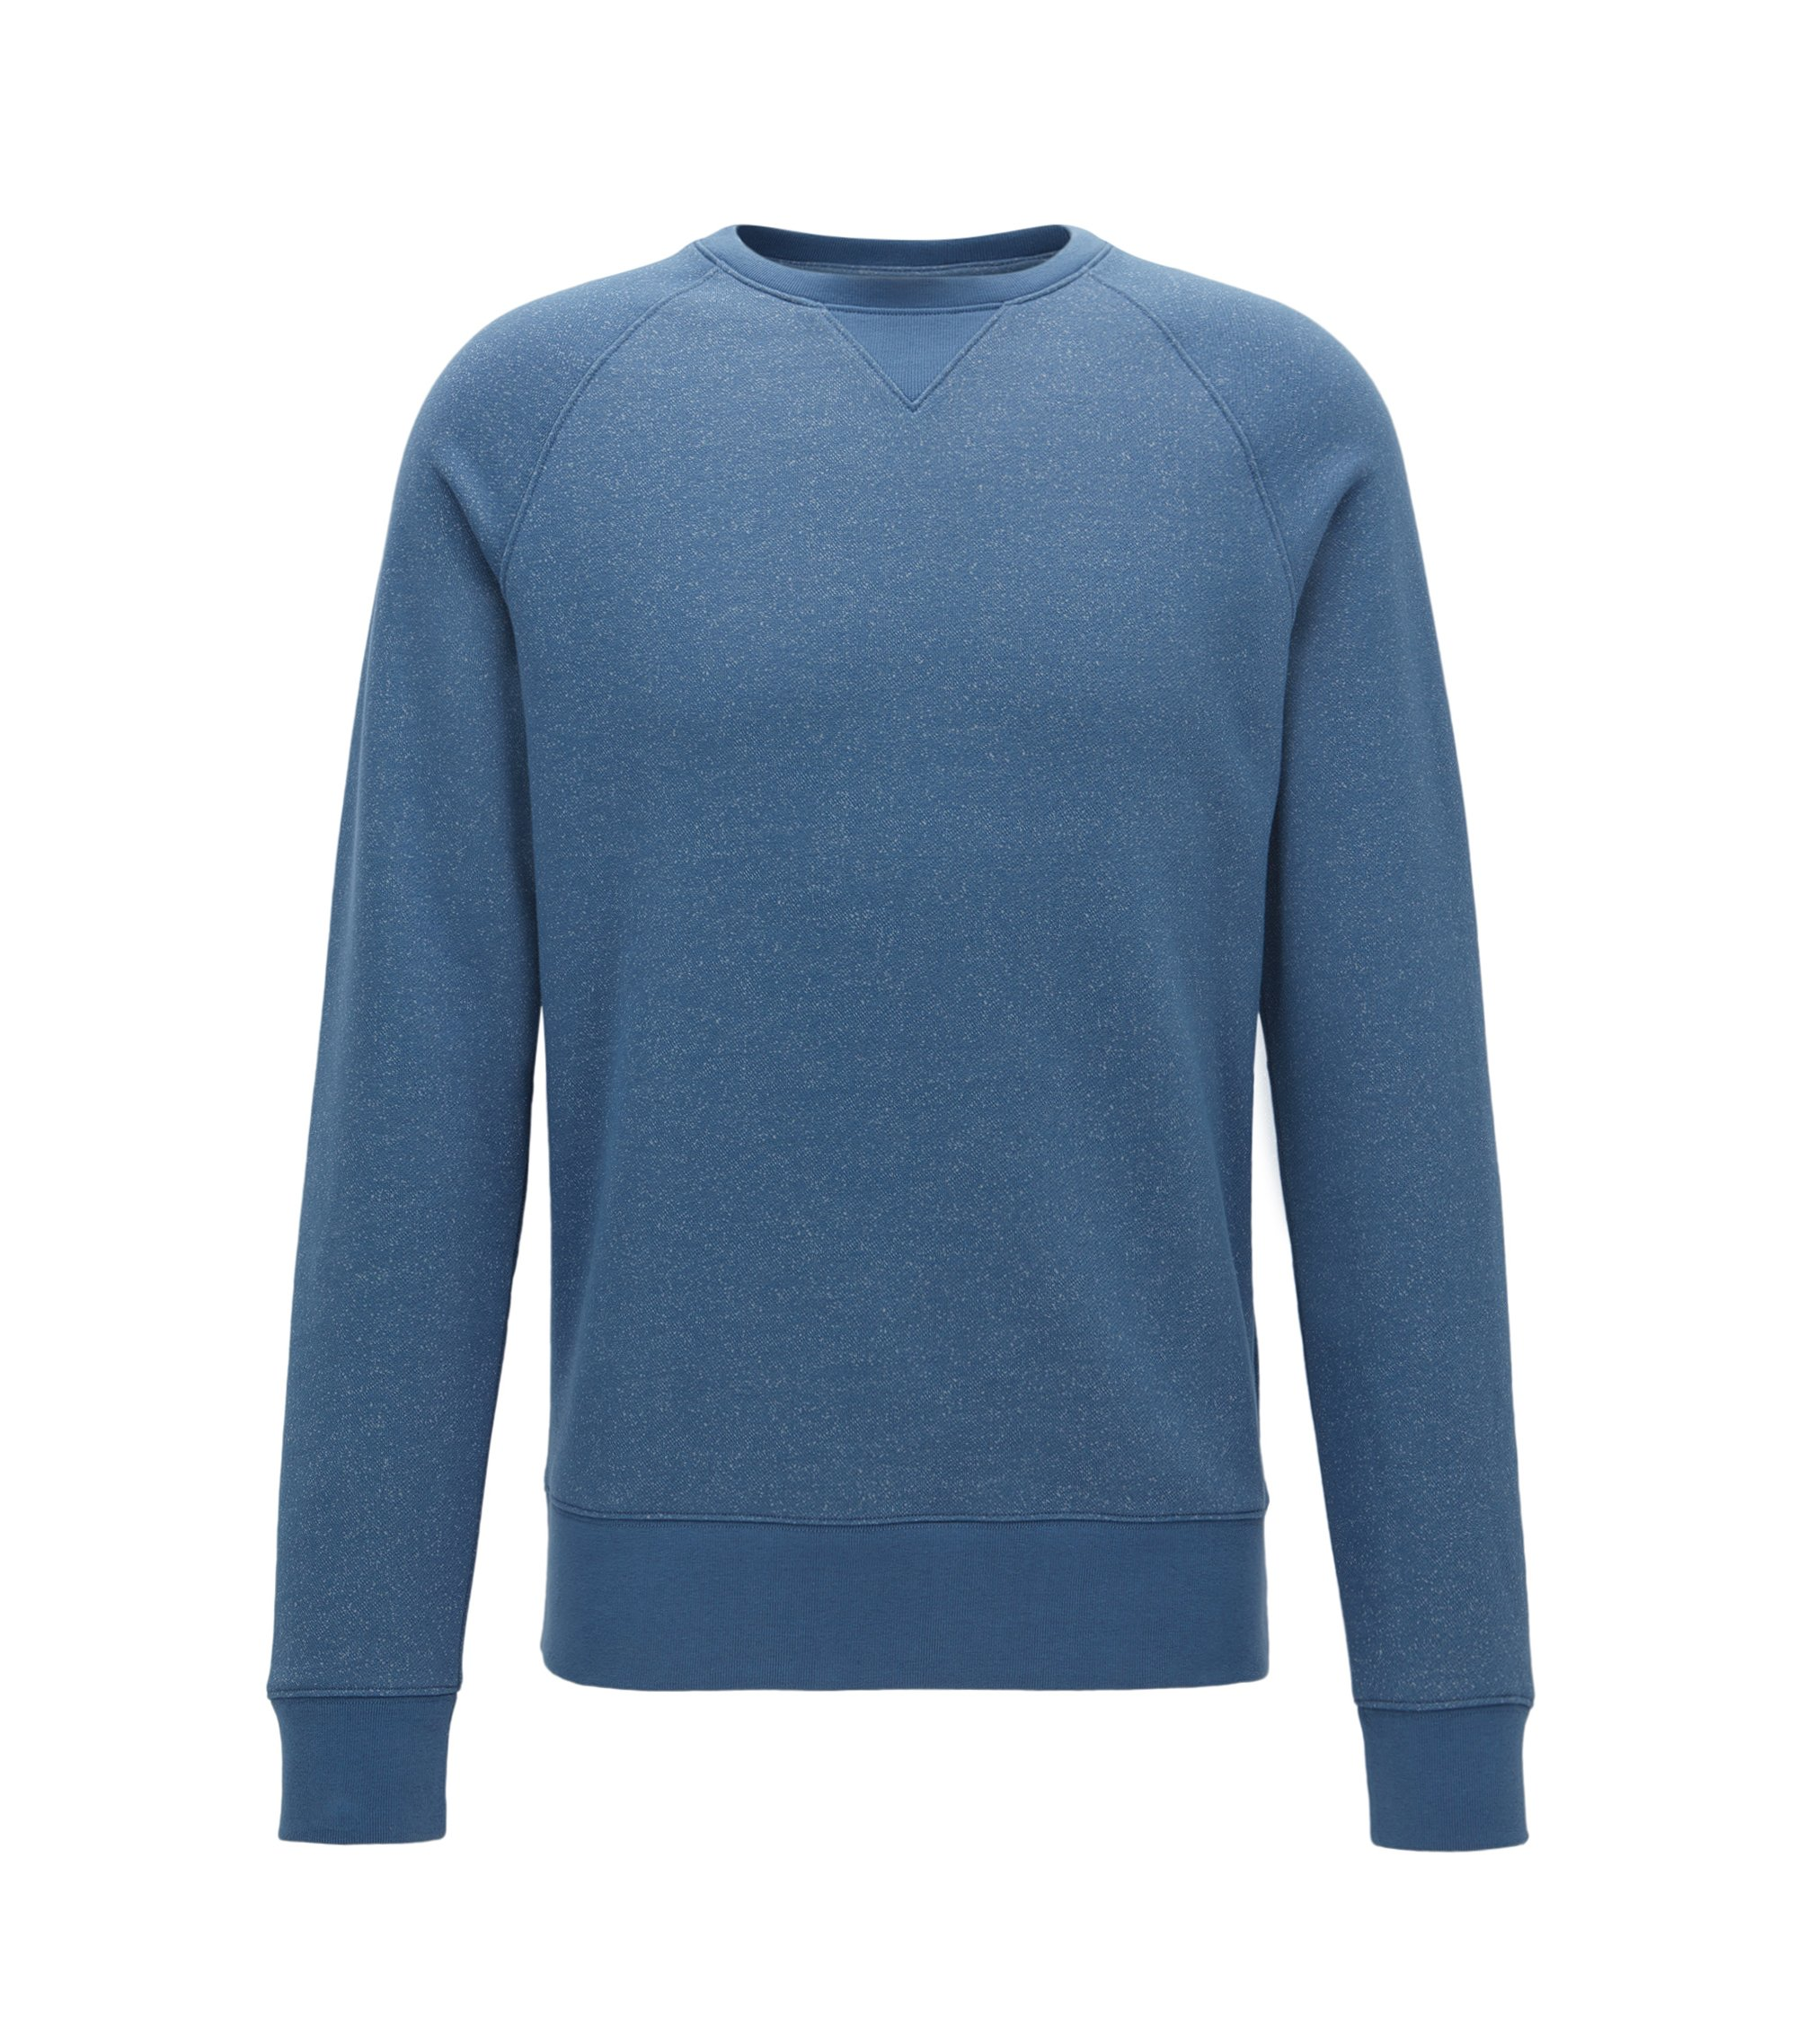 Mouliné sweatshirt in a soft cotton blend , Blue